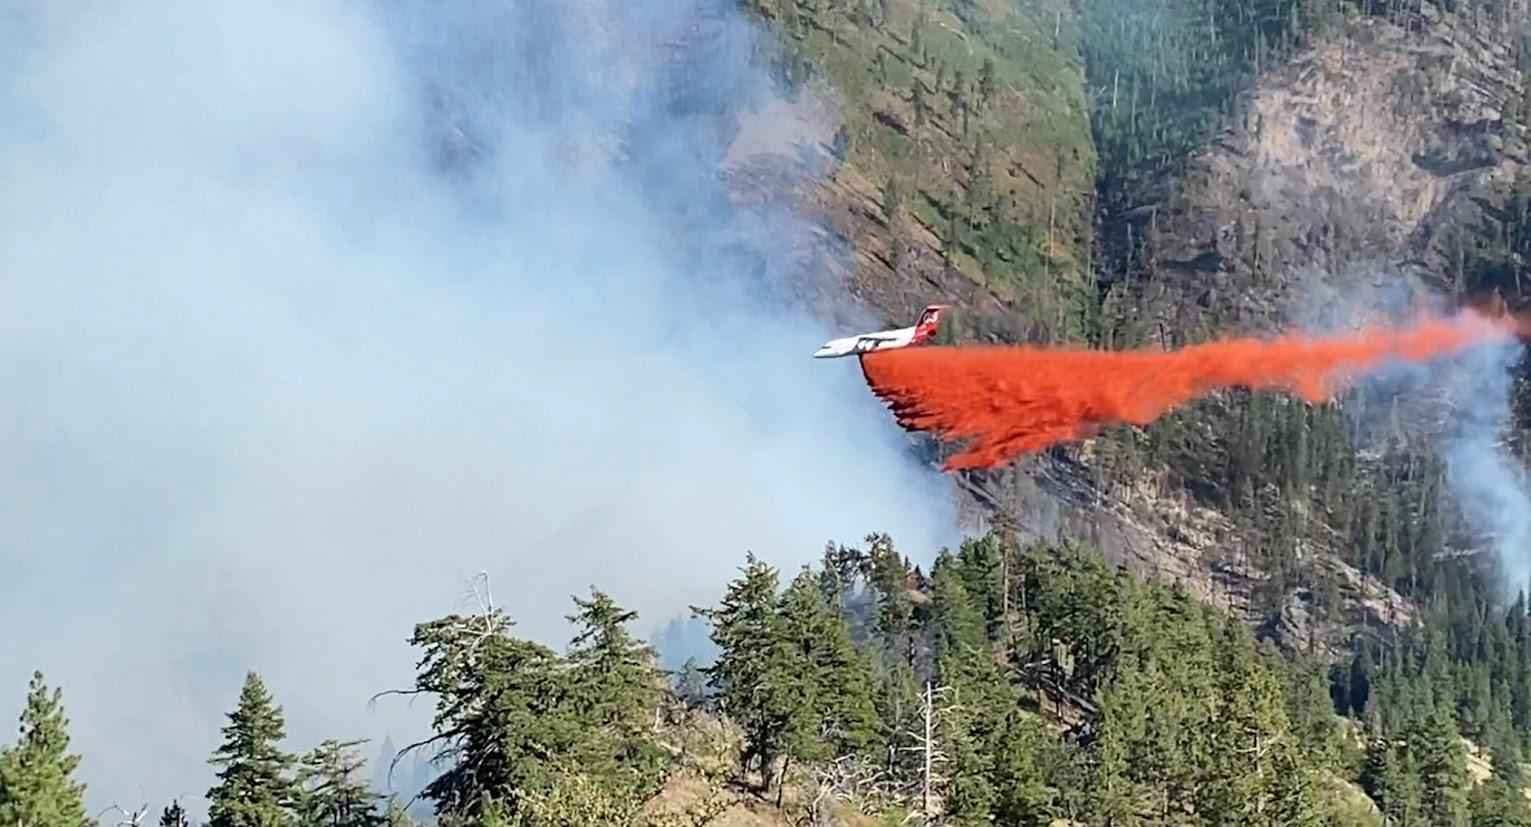 A plane drops a load of red retardant across a forested mountainside.